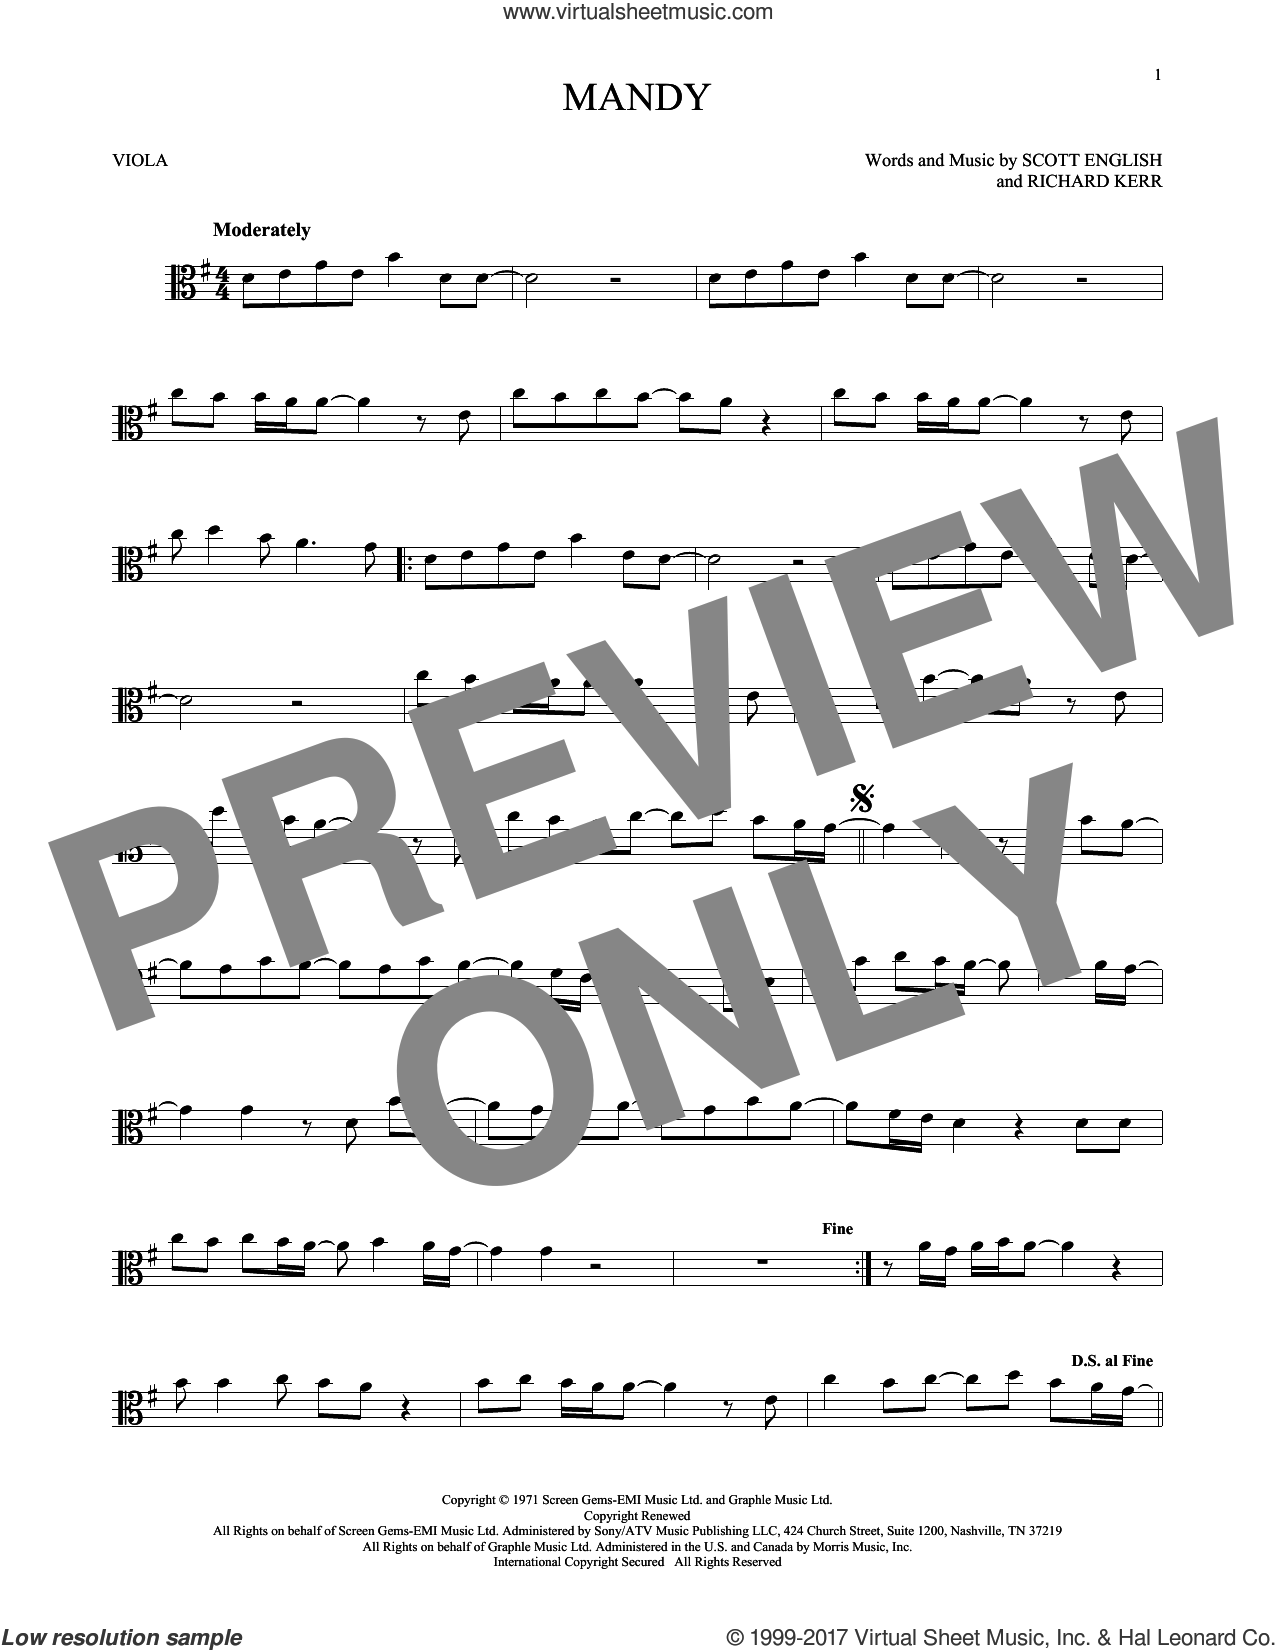 Mandy sheet music for viola solo by Barry Manilow, Richard Kerr and Scott English, intermediate skill level